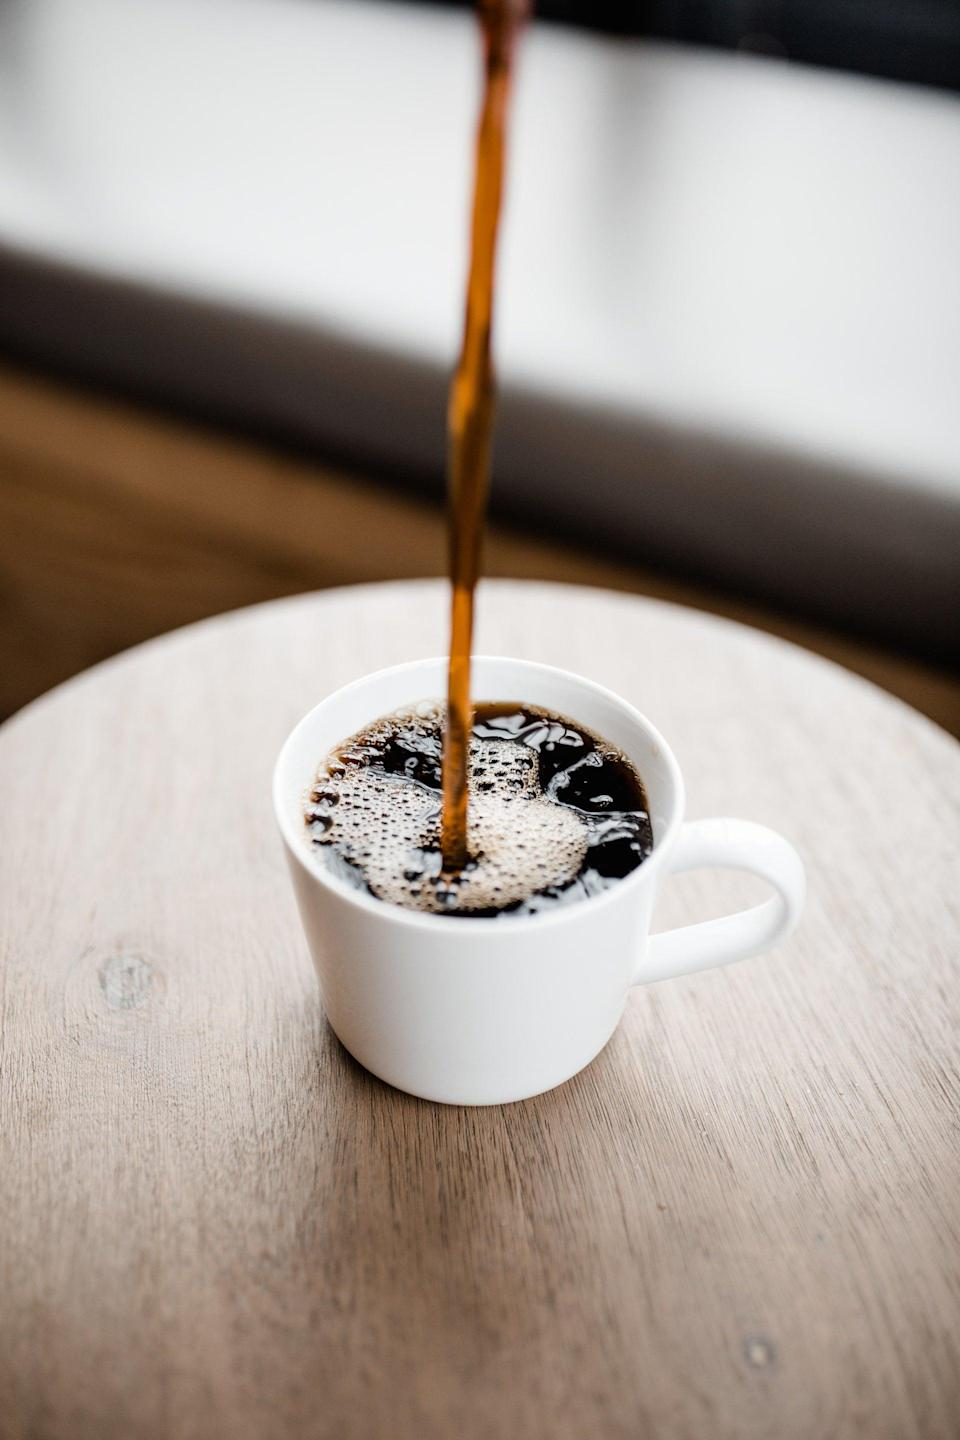 <p>Water is highly encouraged on the Noom program, but in addition to sweet, pure H2O, there are a few other beverages on the green list.</p> <ul> <li>Black coffee</li> <li>Coffee with nonfat creamer or unsweetened milk</li> <li>Unsweetened tea</li> <li>Water with lemon or other fruit slices</li> </ul>